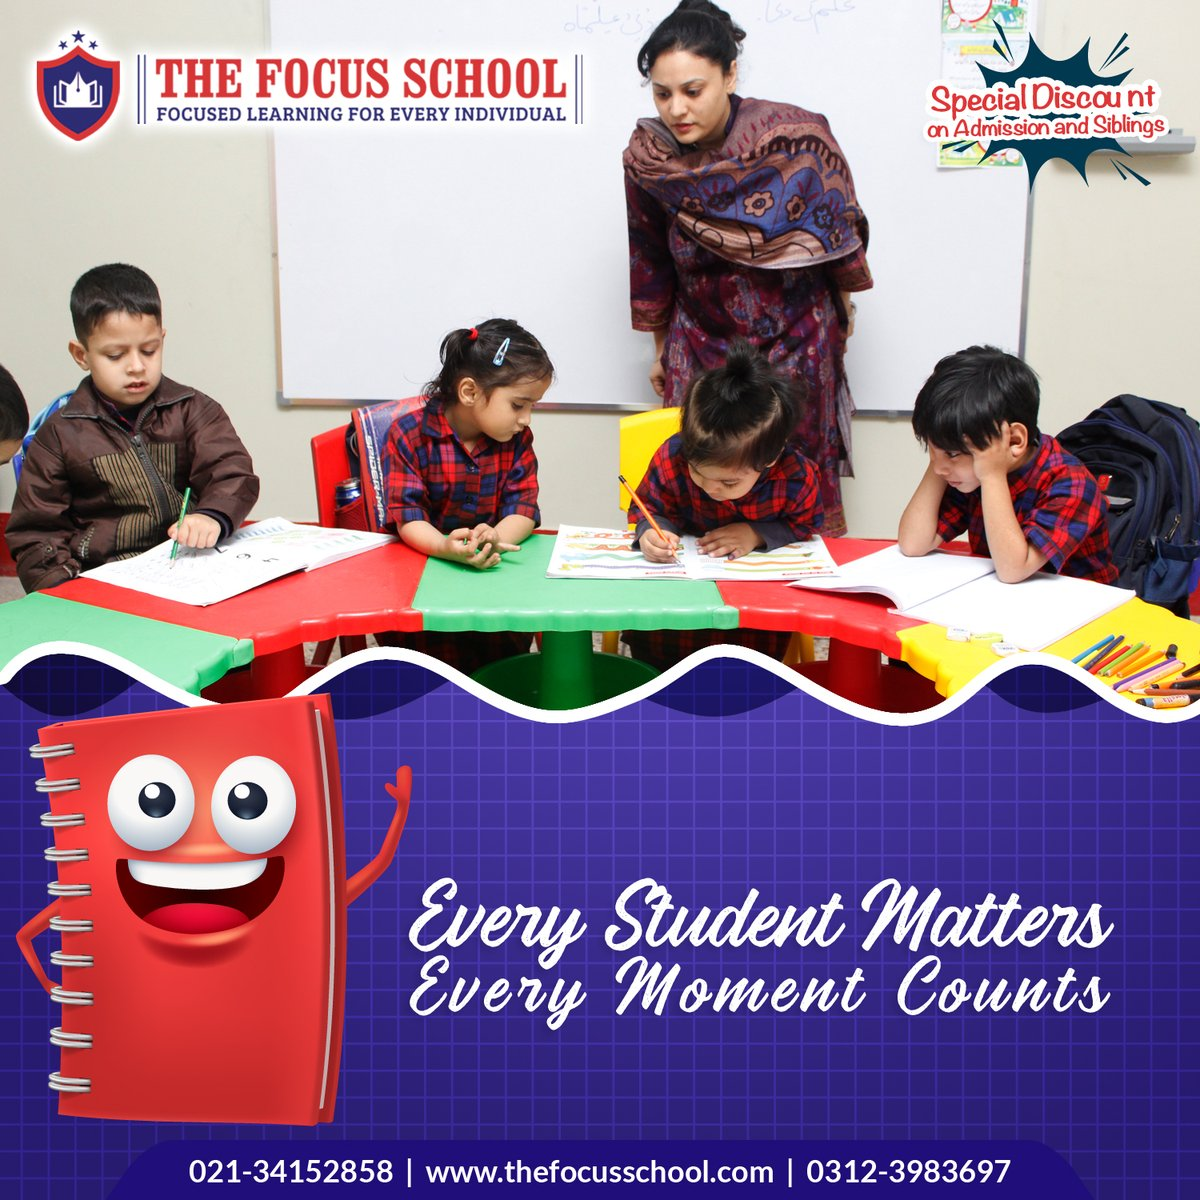 @Boundlesstechno Running #socialmedia Paid campaign for Education Client Top School in Karachi #TheFOCUSSchool  Website: http://boundlesstech.net/social-media-m …  #Englishschool #BestSchool #OLevel #ALevel #OLevelSchool #preschool #montessori #Daycare #Happypalace #Happyhome #Cityschoolpic.twitter.com/kNXVQ3GRMa